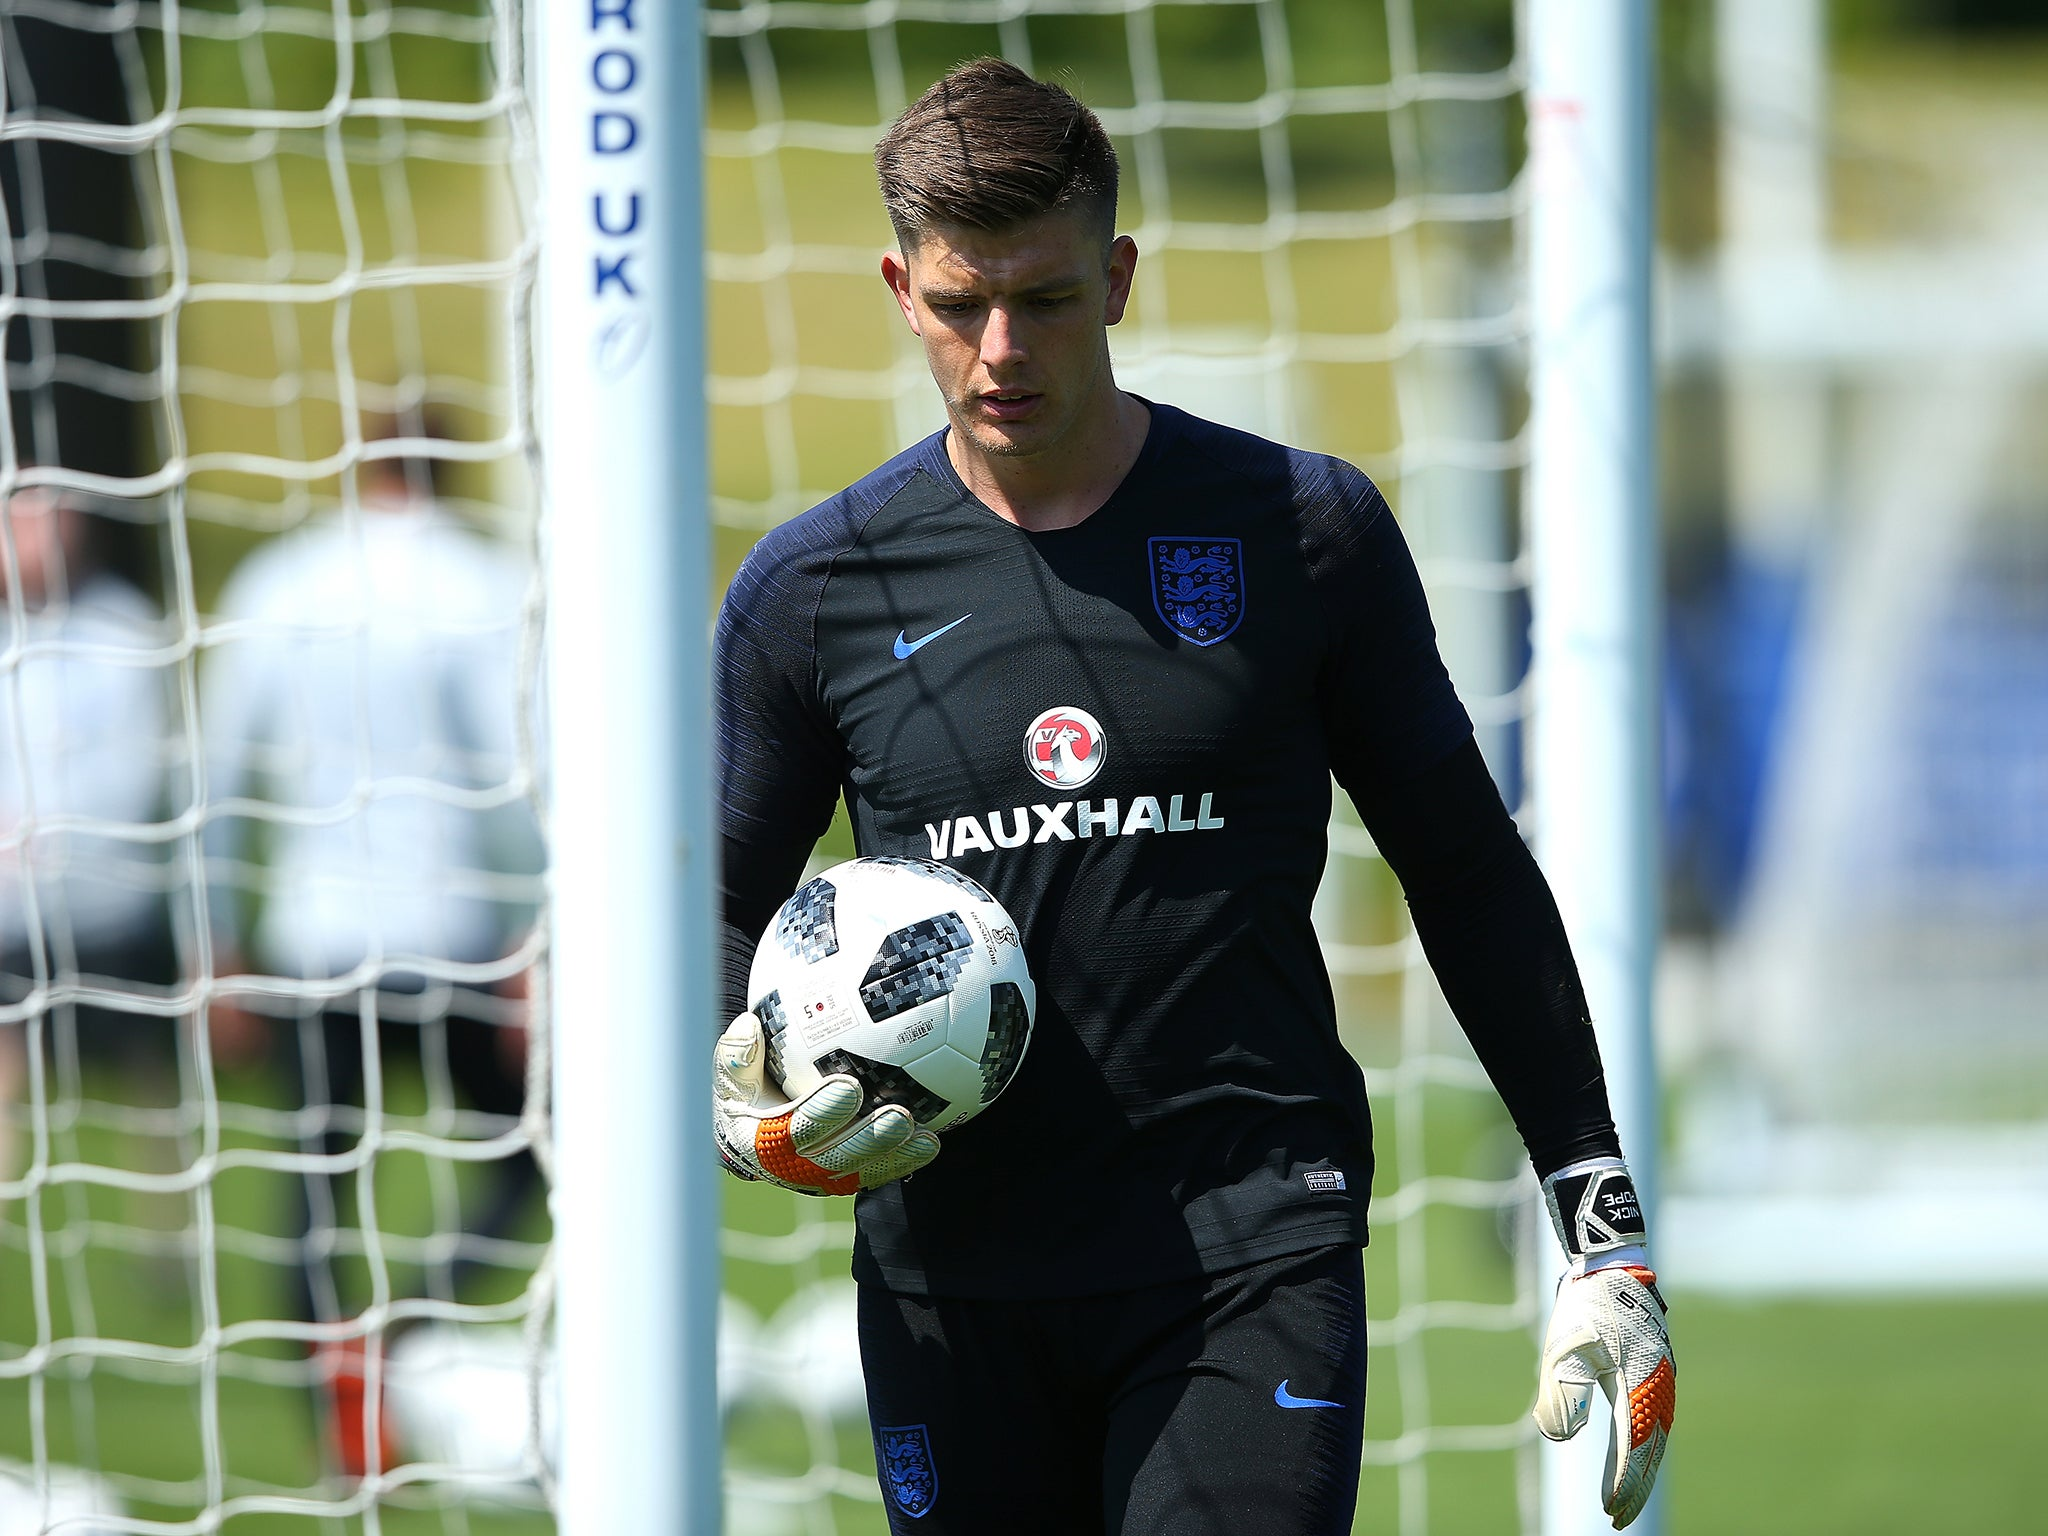 World Cup 2018: Nick Pope reflects on 'surreal' rise as he heads to Russia eight months after Premier League debut